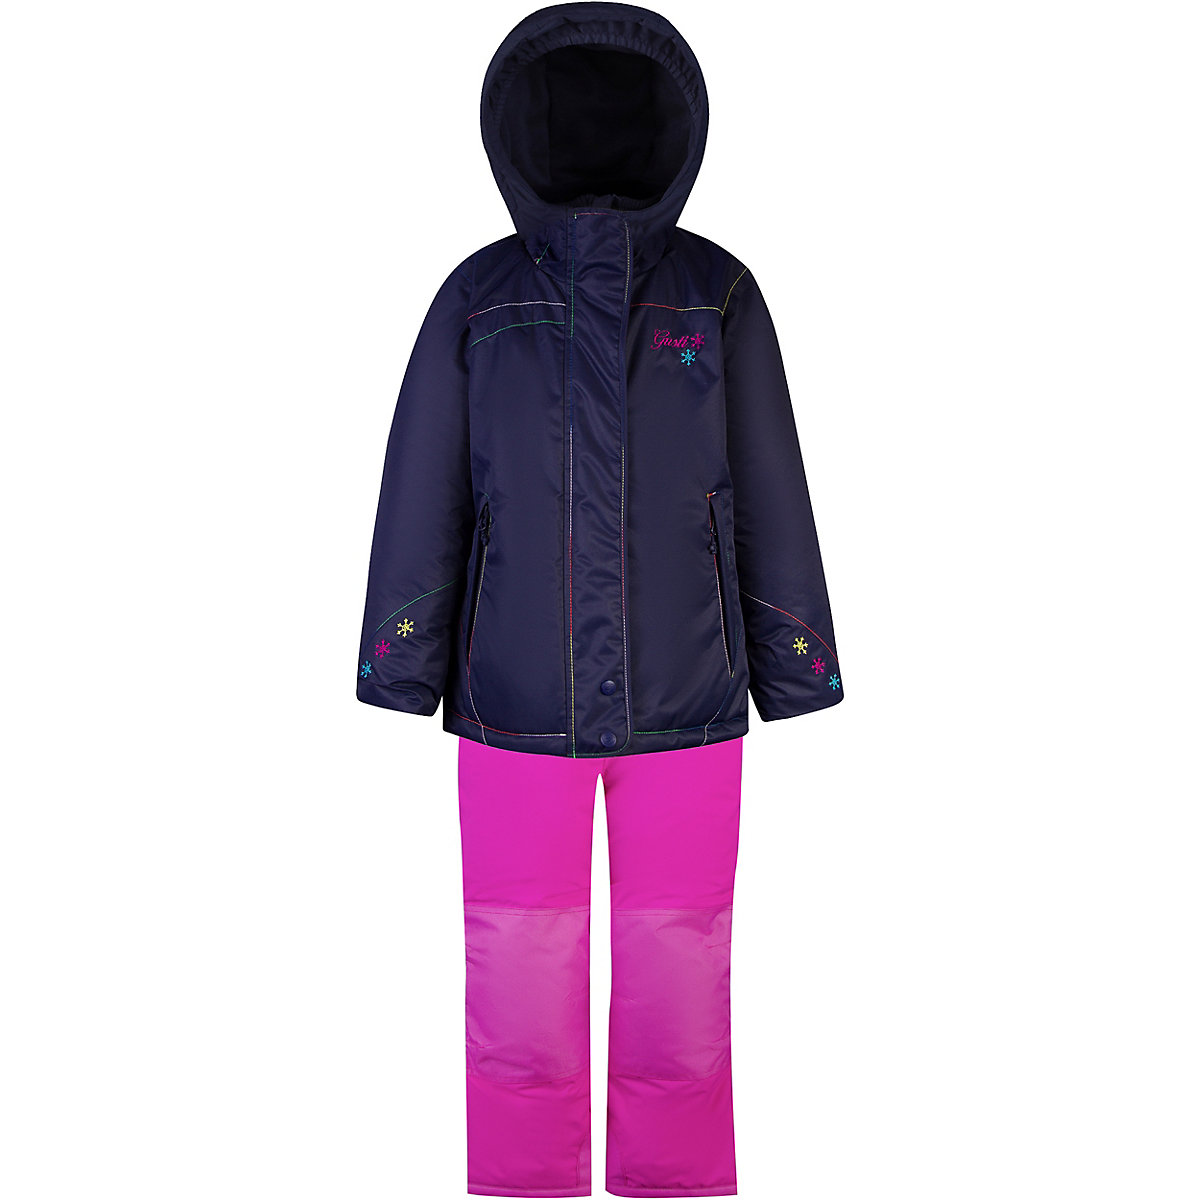 GUSTI Children's Sets 9512028 clothing for girls set dress winter clothes girl kids wear girls clothing sets sports suits for girls clothing children sports wear spring autumn kids tracksuits